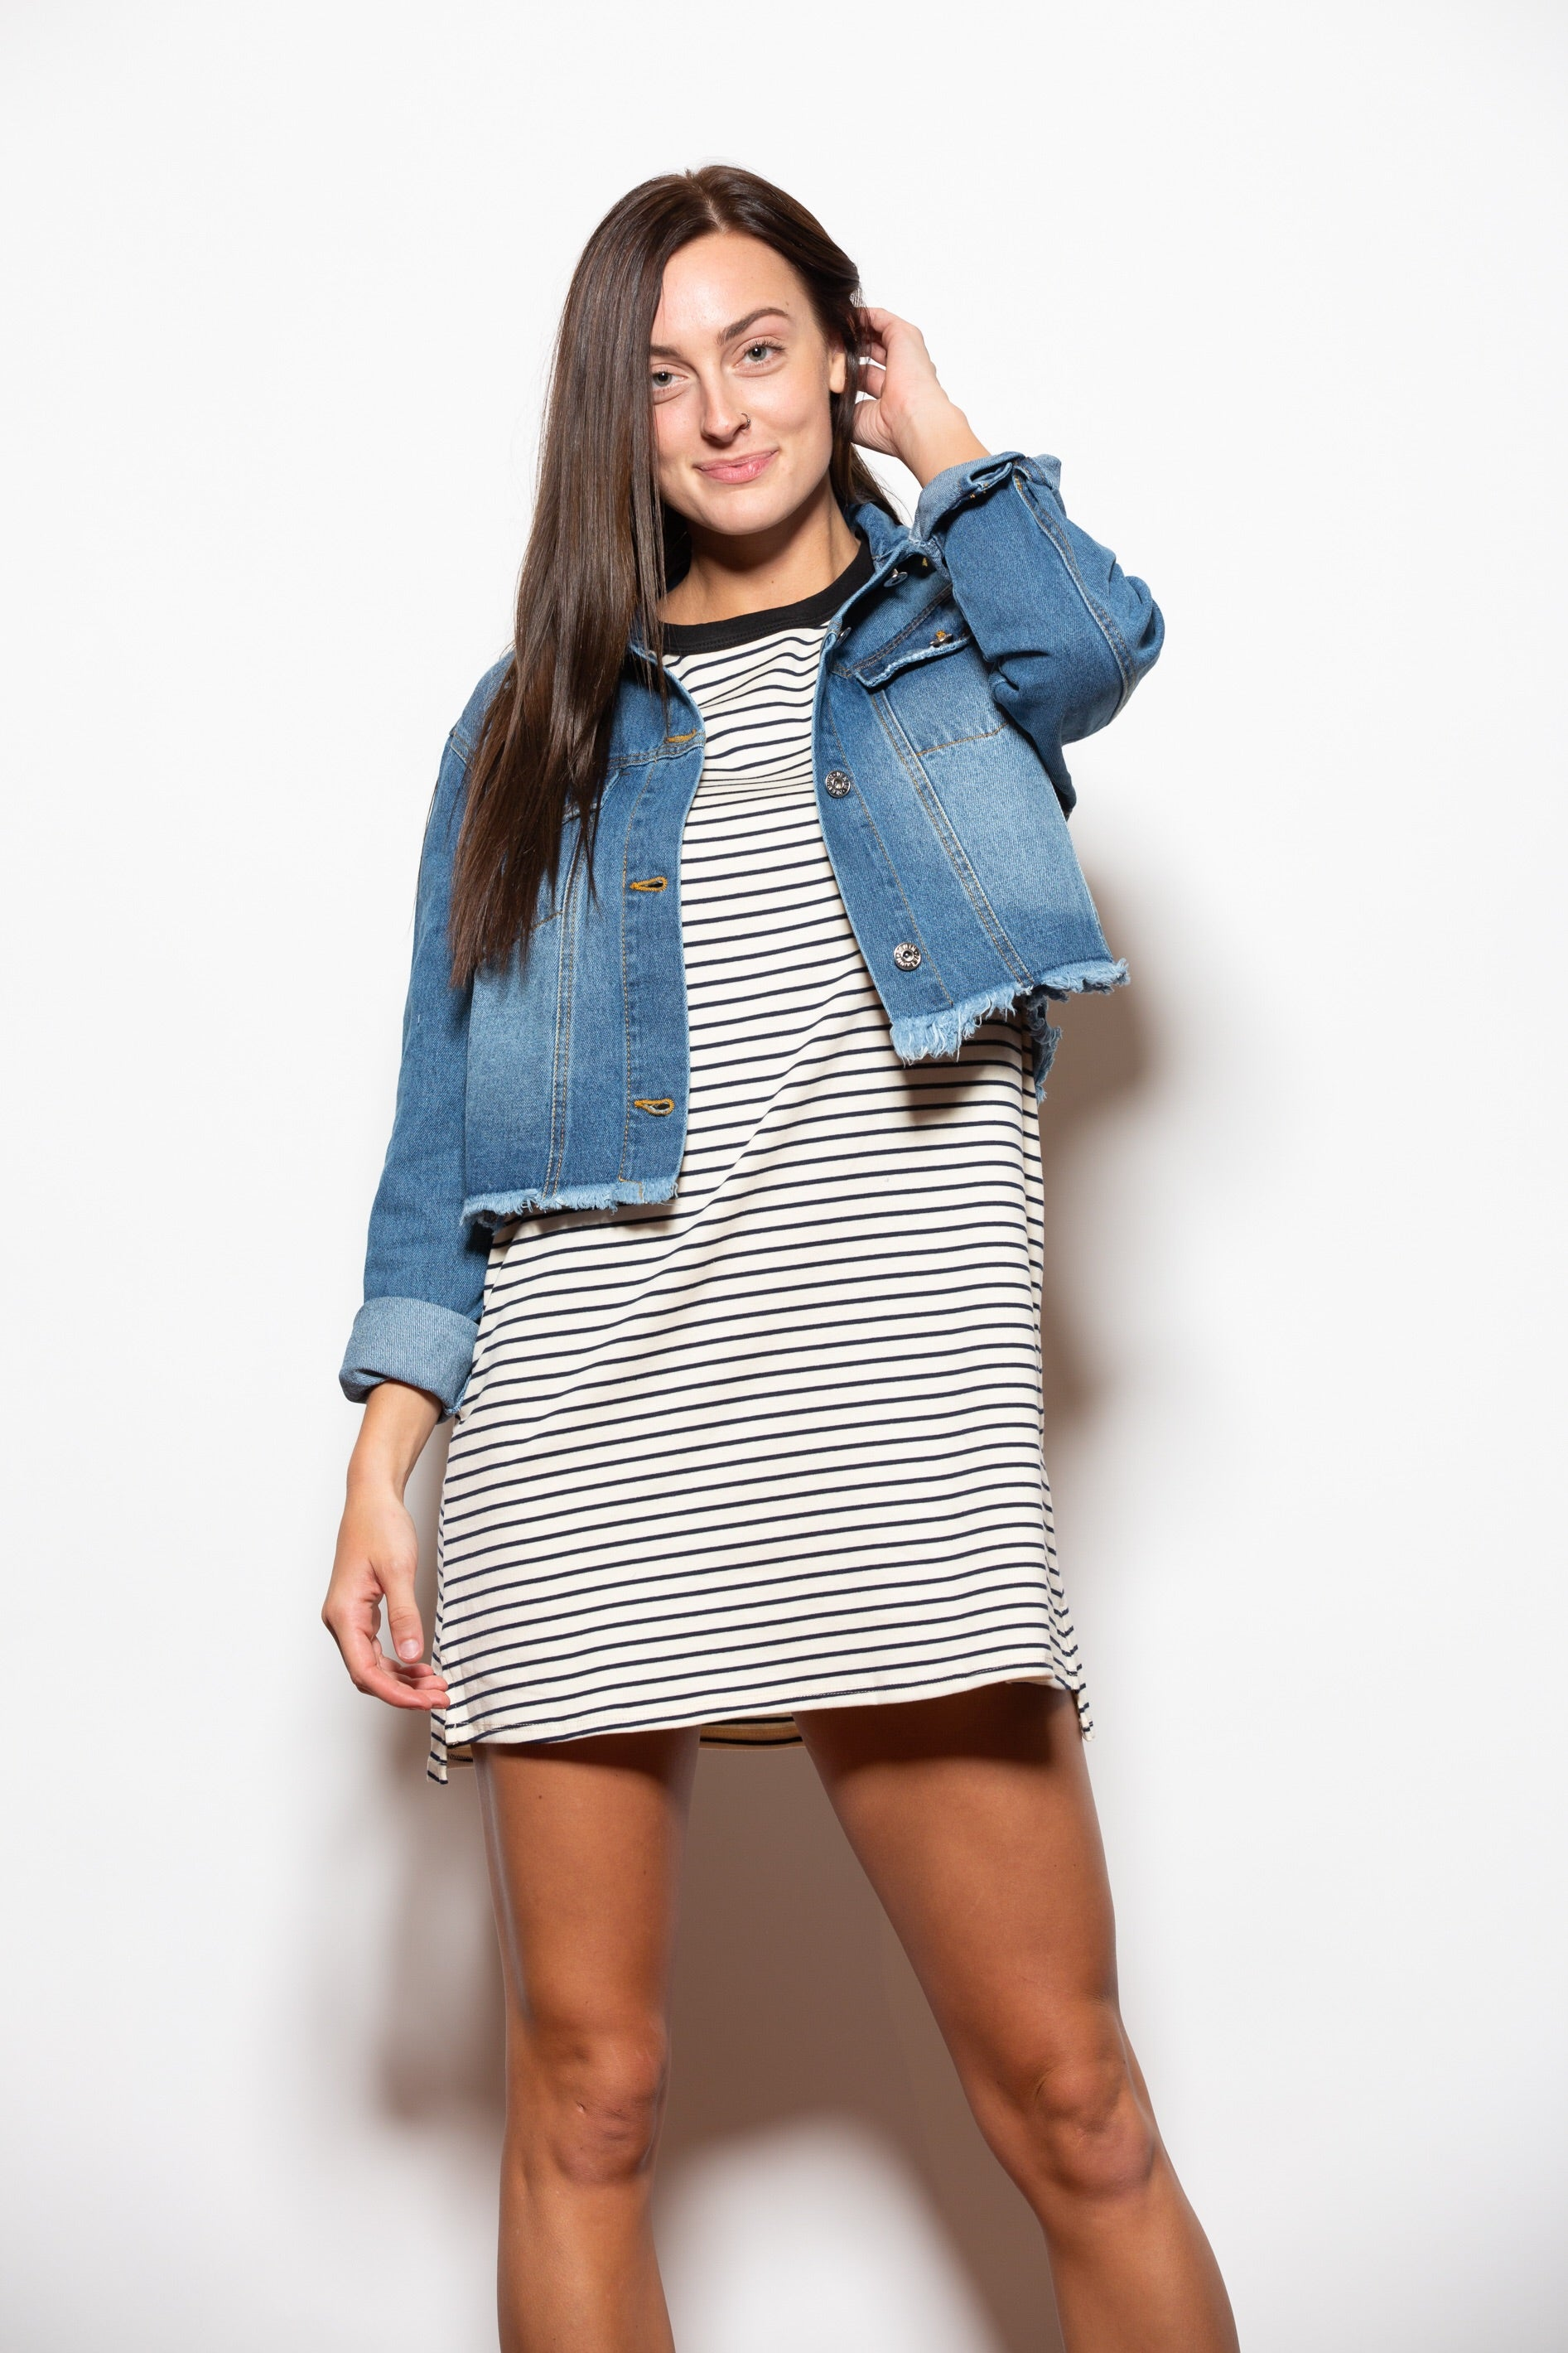 Thinking Of You Stripe T-Shirt Dress - impromptu boutique